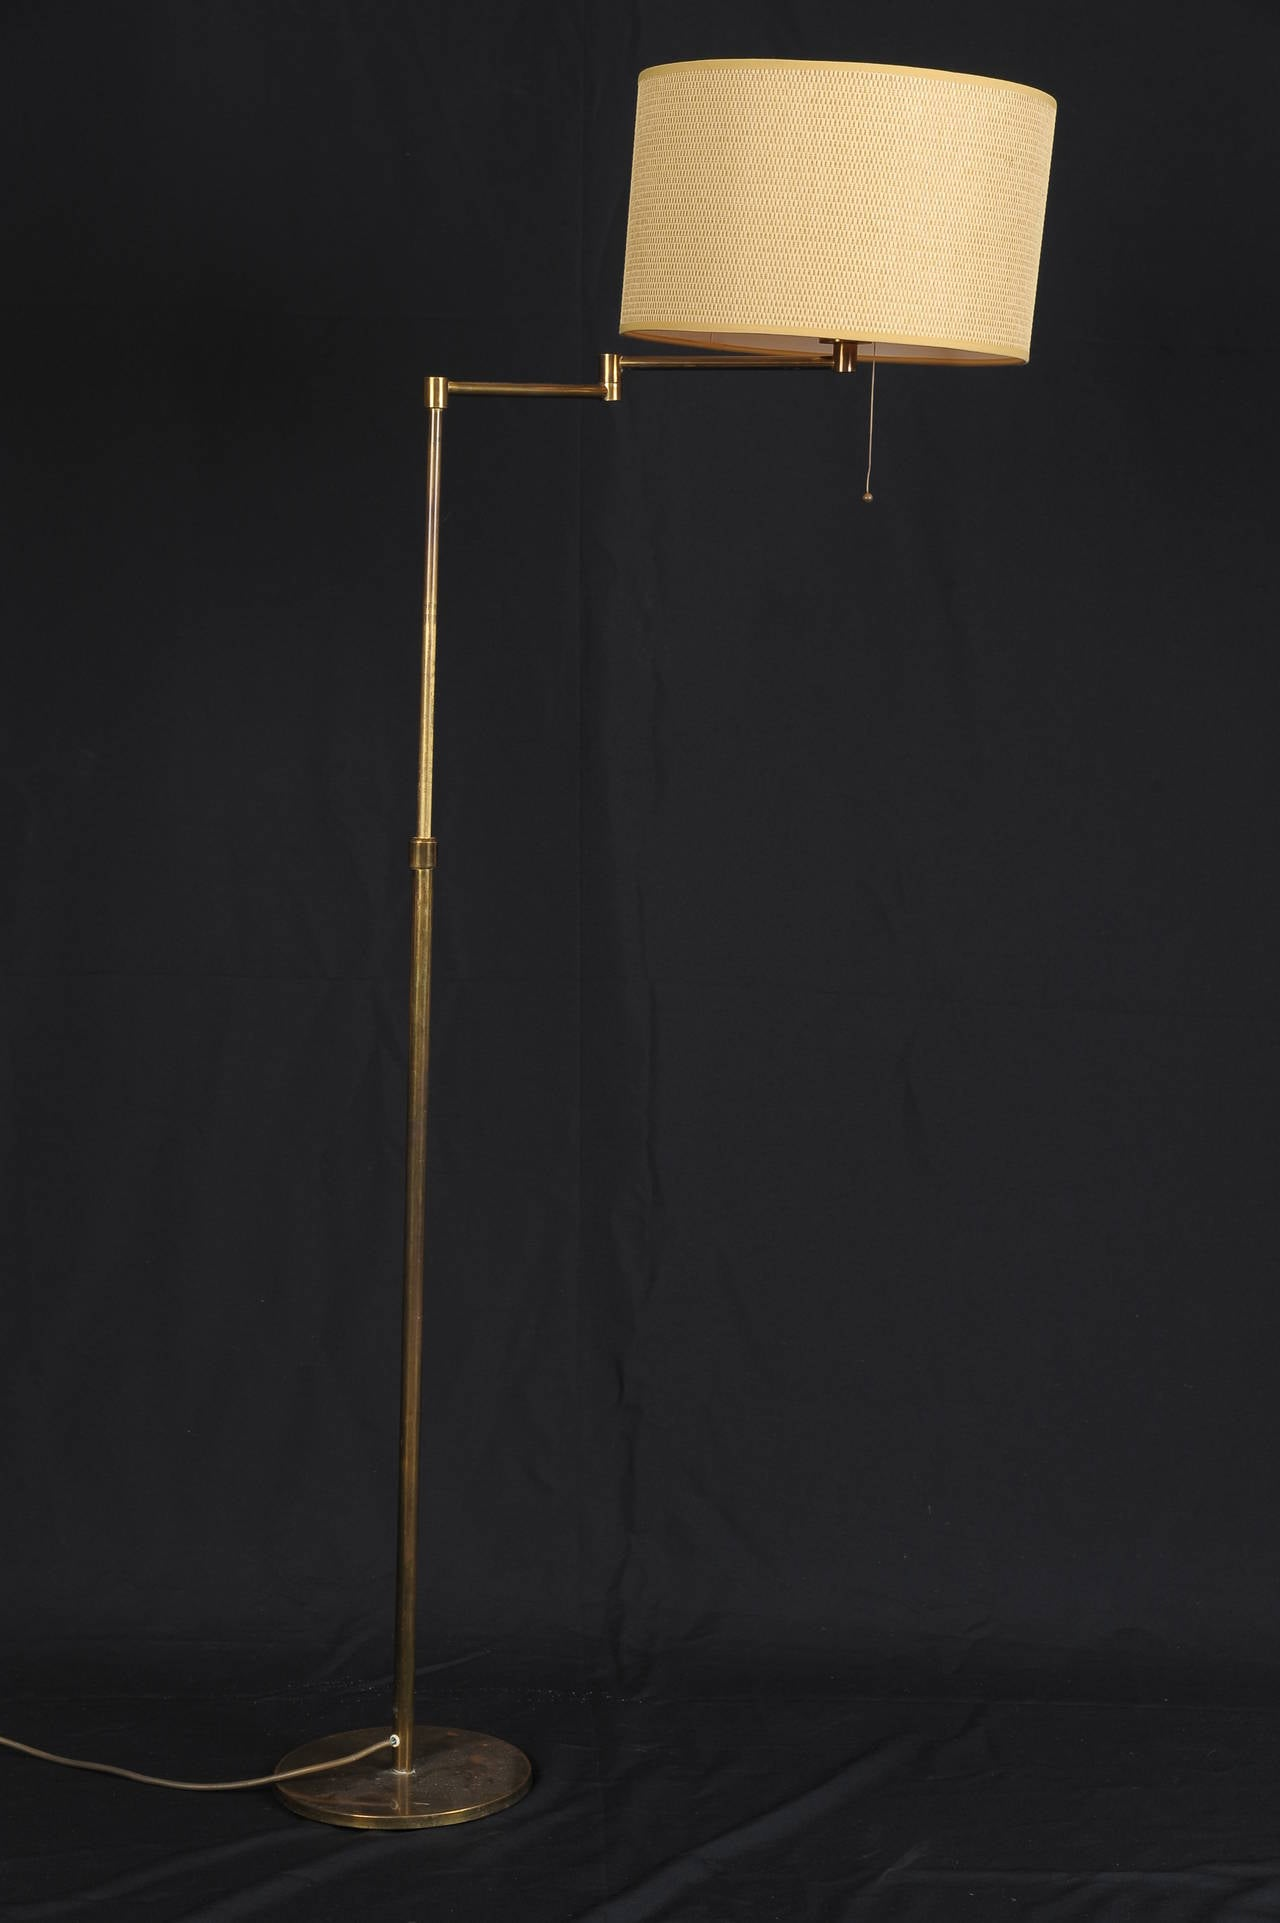 Adjustable height and swing arm antique brass floor lamp in Style of Arredoluce.